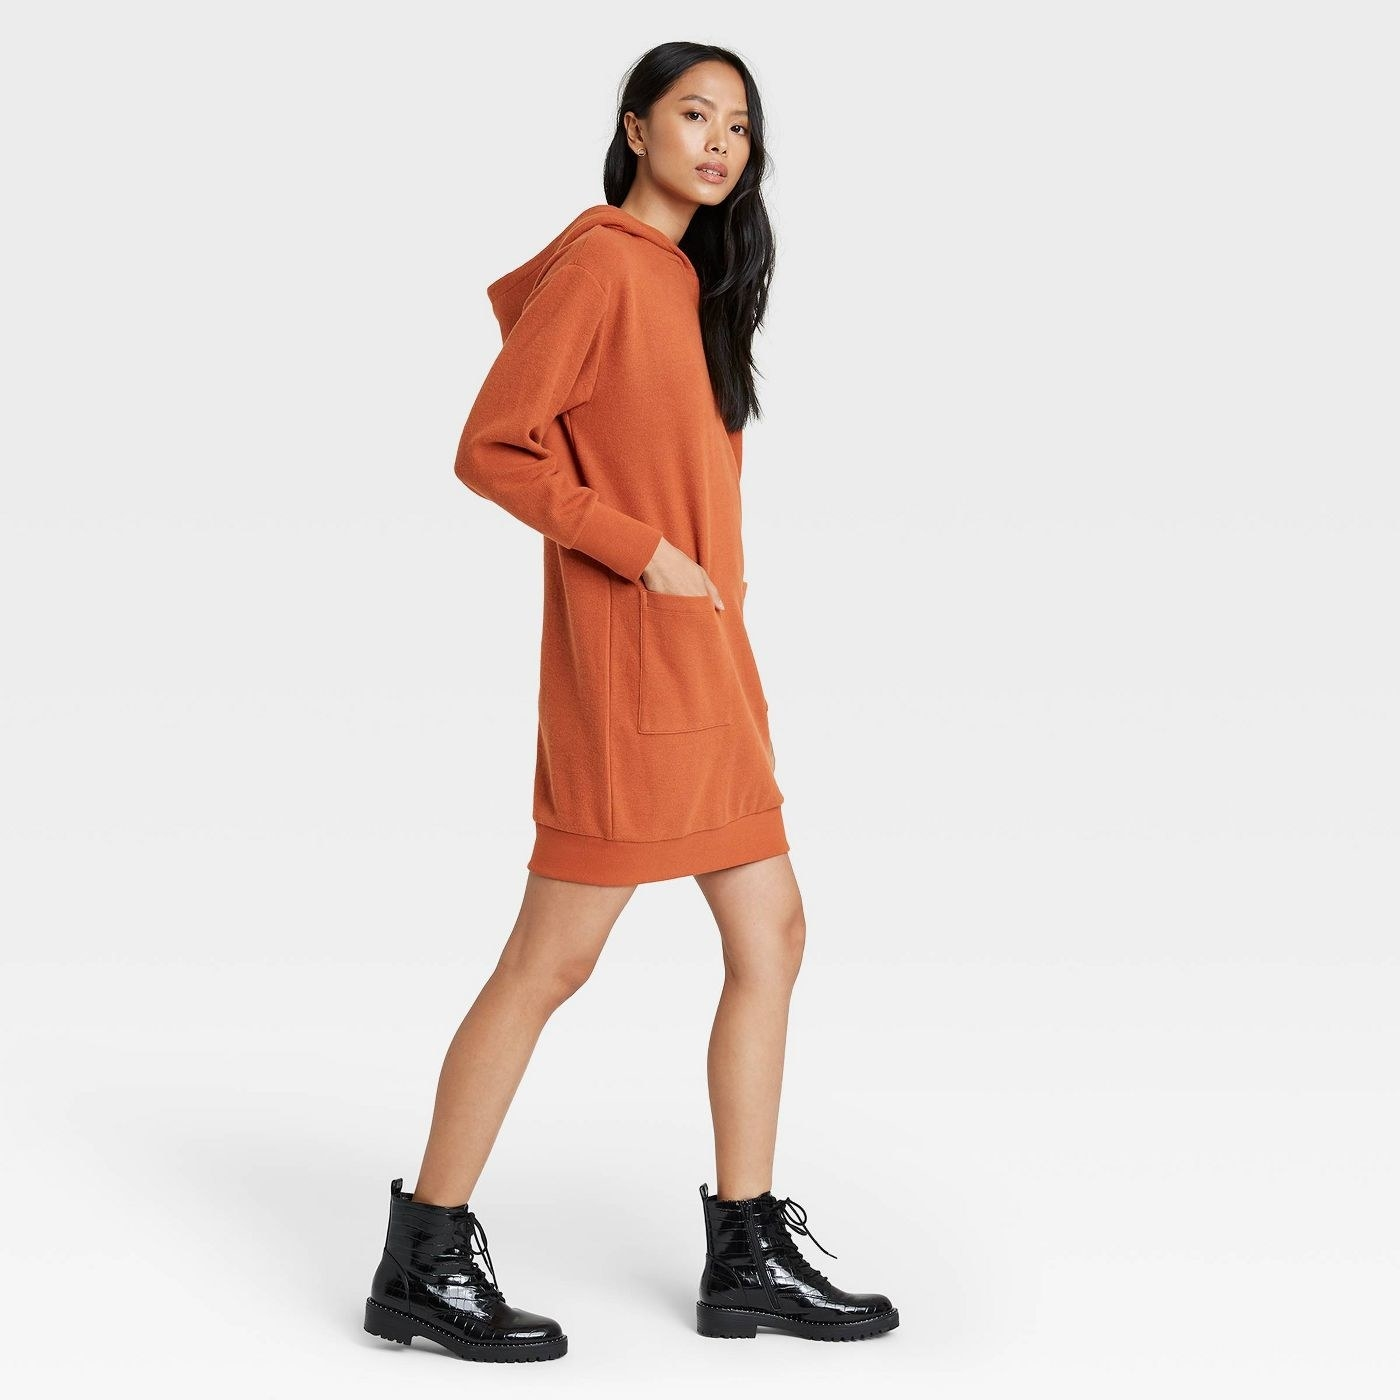 a model wearing the hoodie dress in the color brown which looks like burnt orange